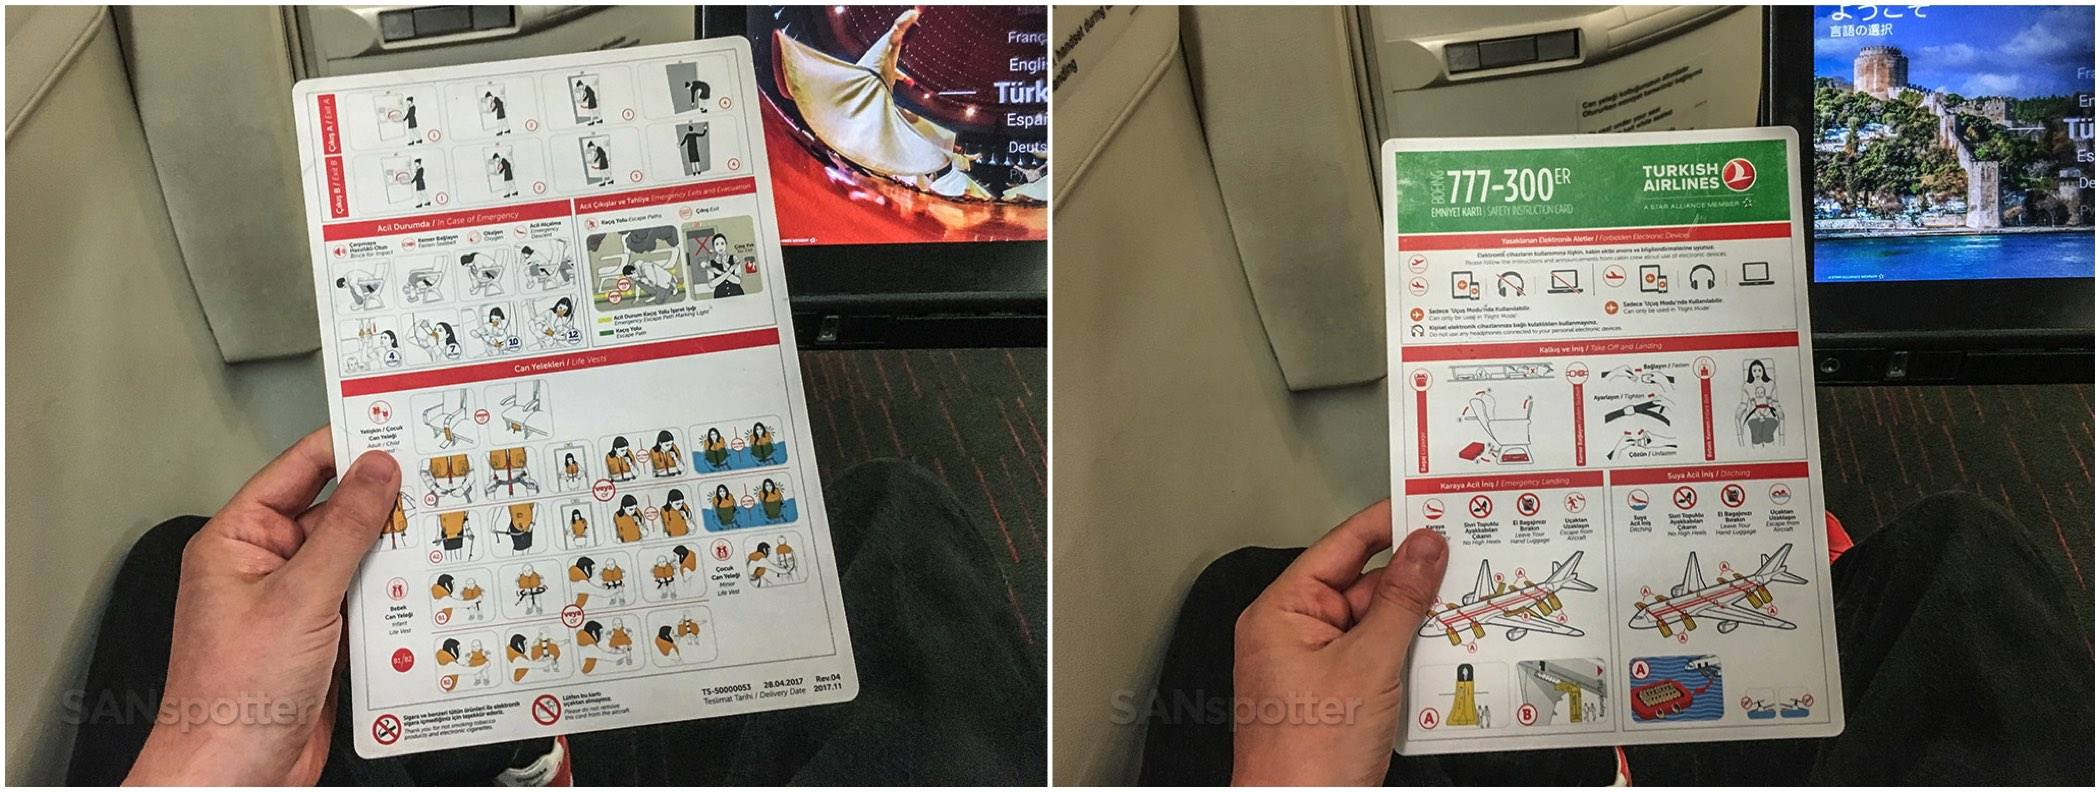 Turkish Airlines 777-300 safety card